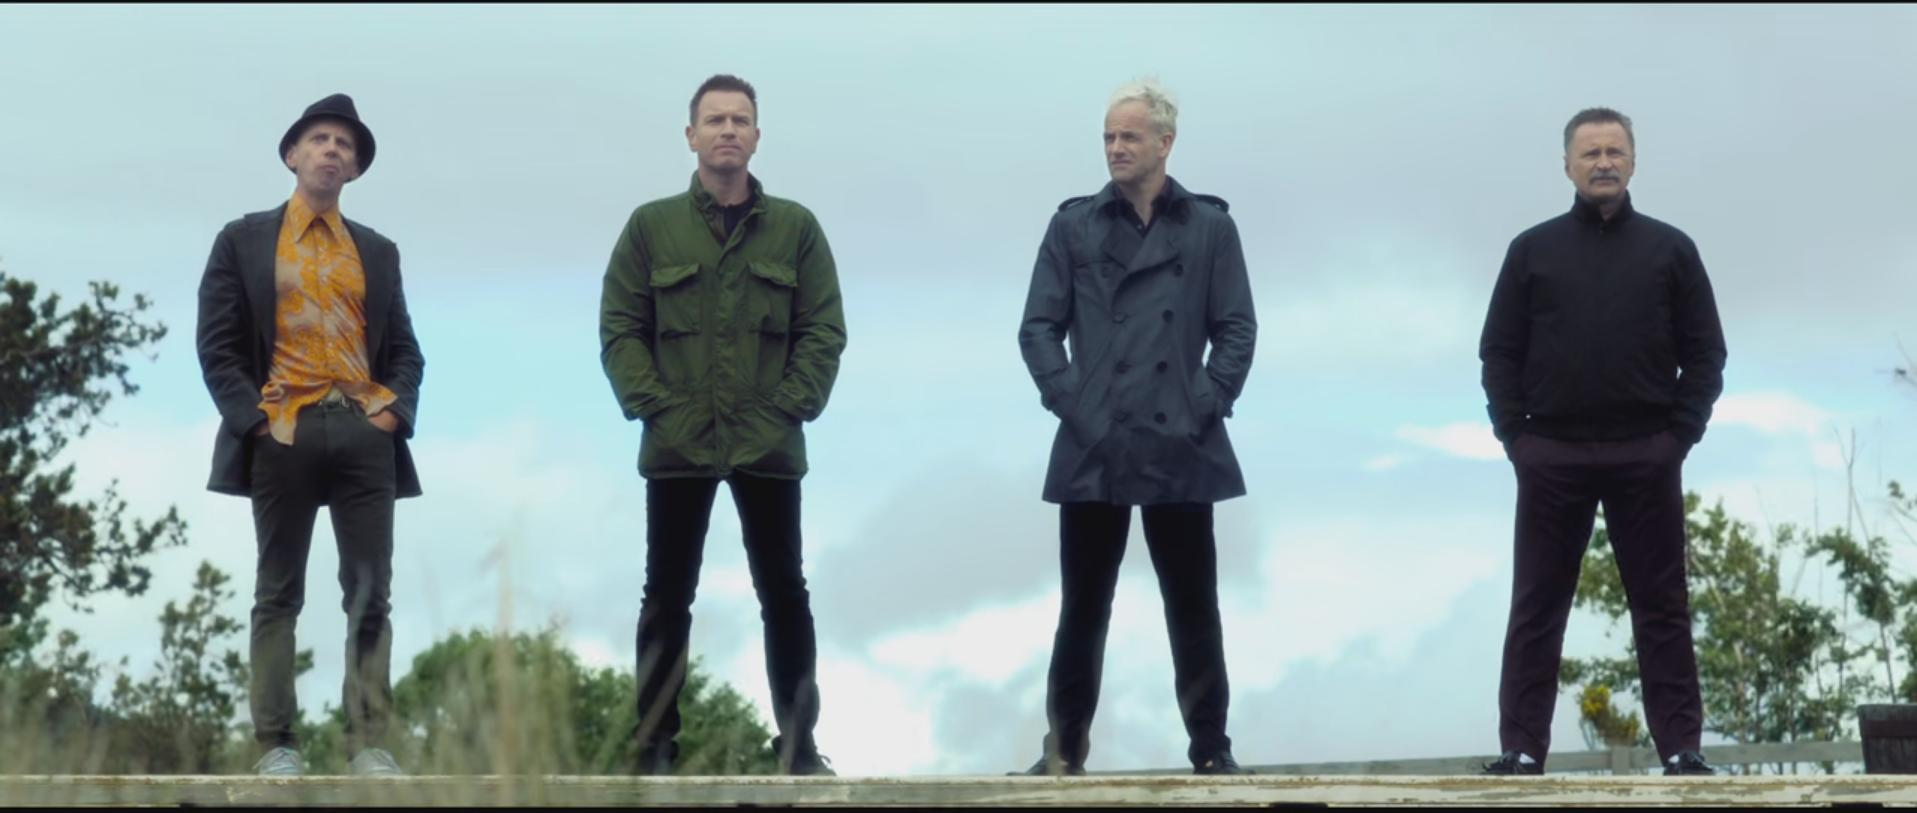 T2 : Trainspotting 2